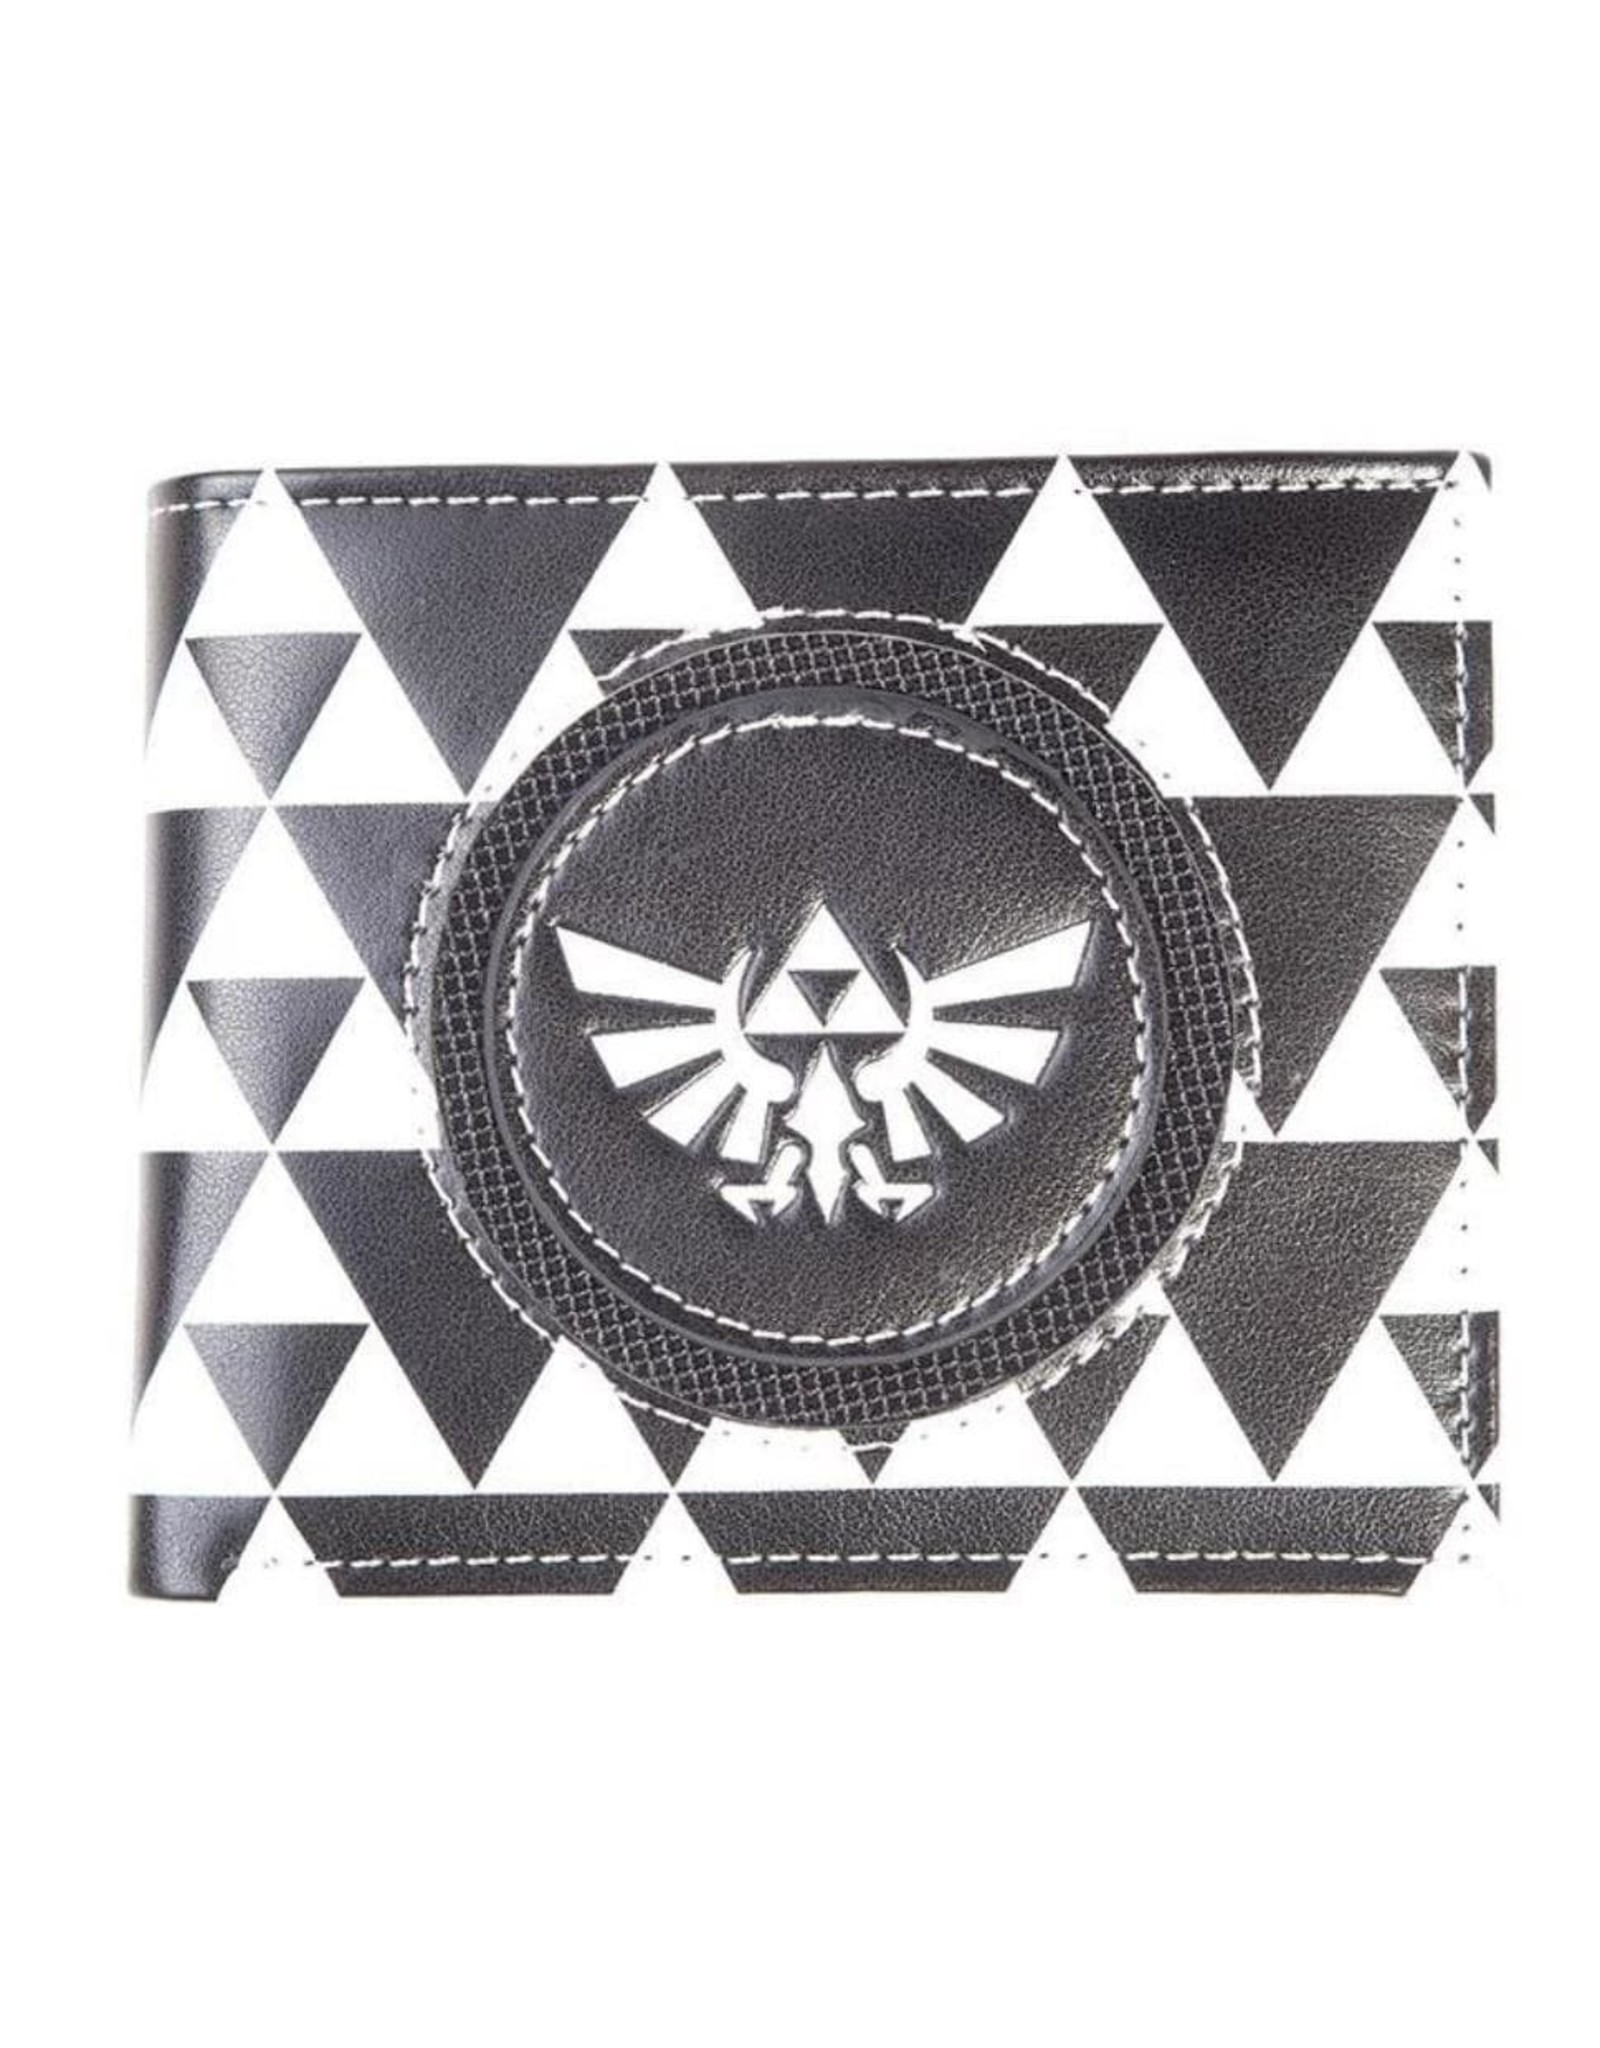 Nintendo Merchandise portemonnees - The Legend of Zelda Triforce portemonnee